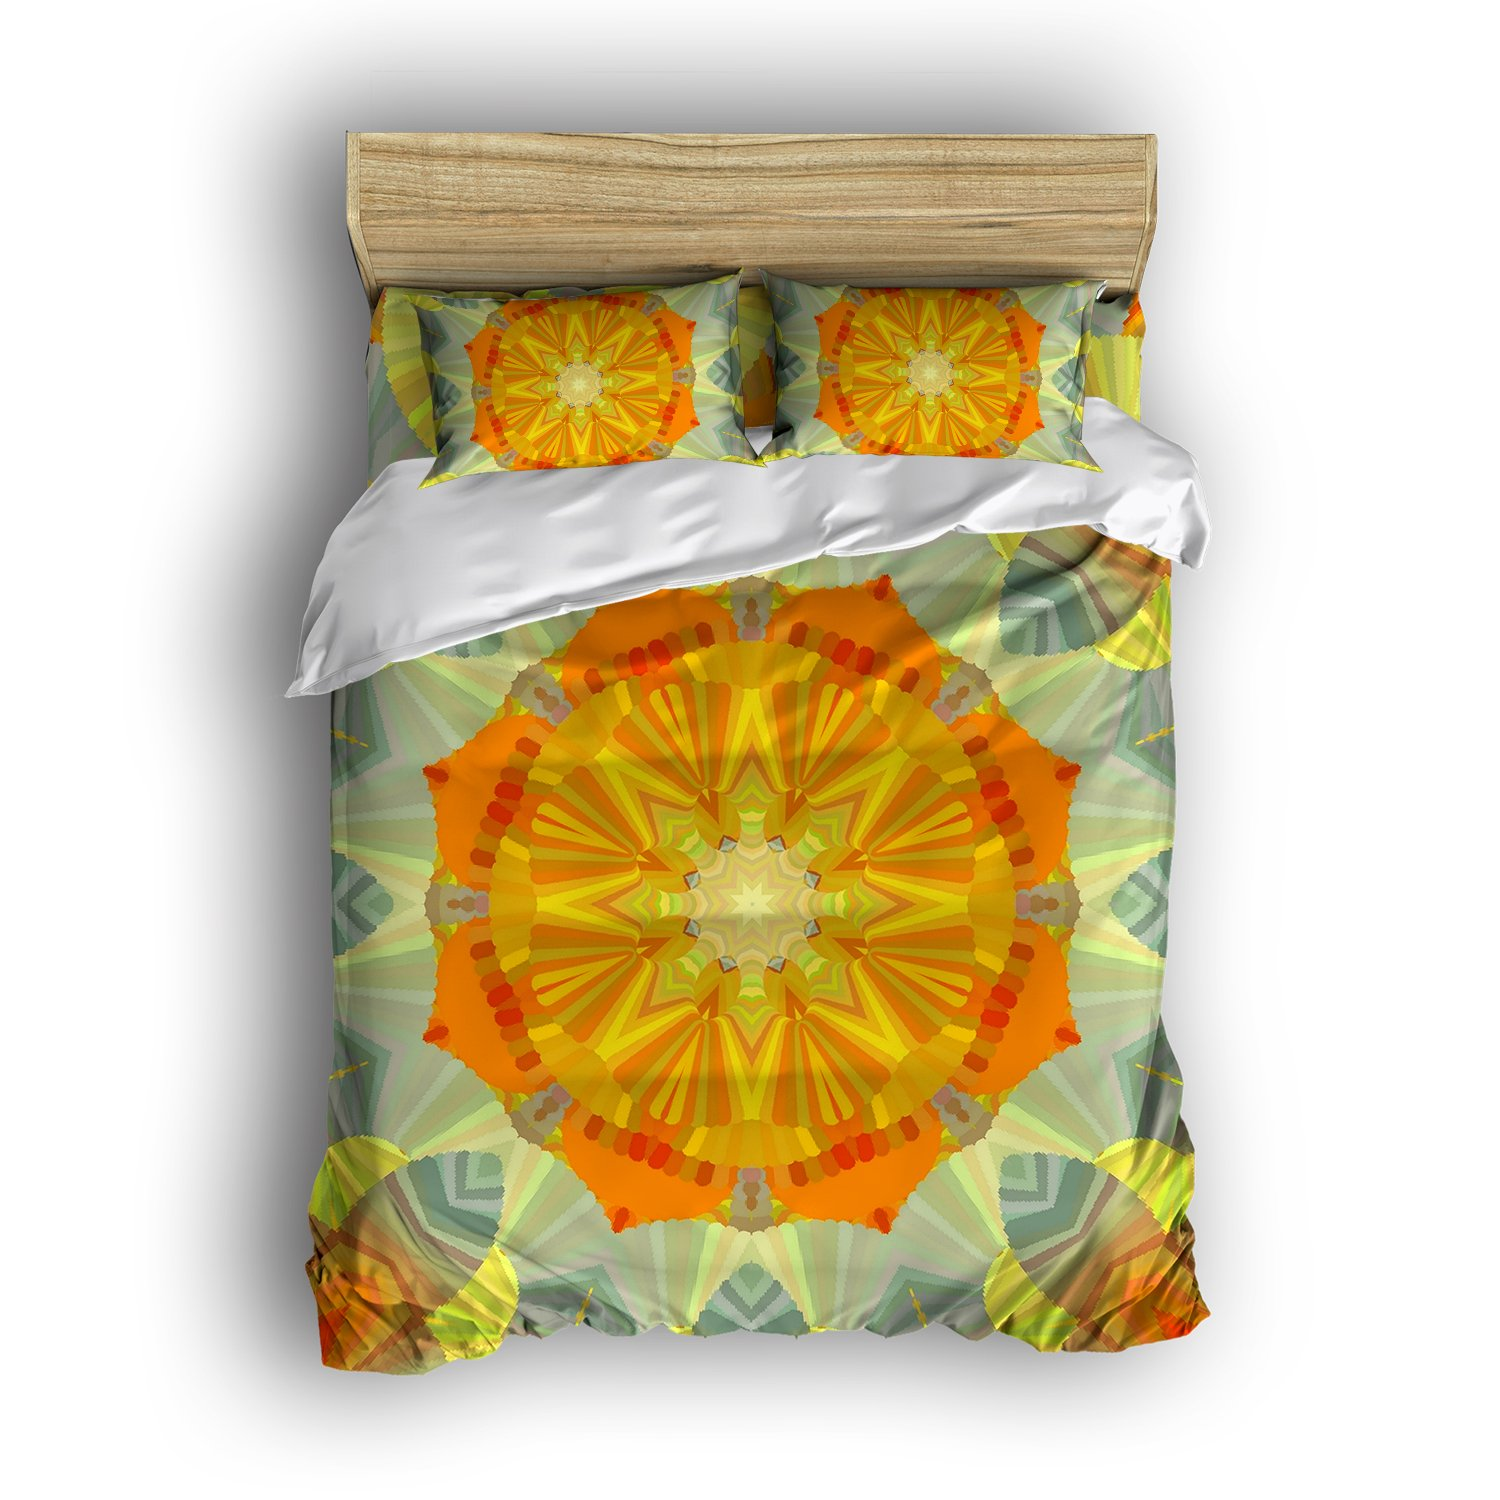 Dioline Bohemian Style Lightweight Cotton Vintage Mandala Floral Twin Quilt Bedding Cover Sets Double Brushed Boho Mandala Four Piece Bedding Sets